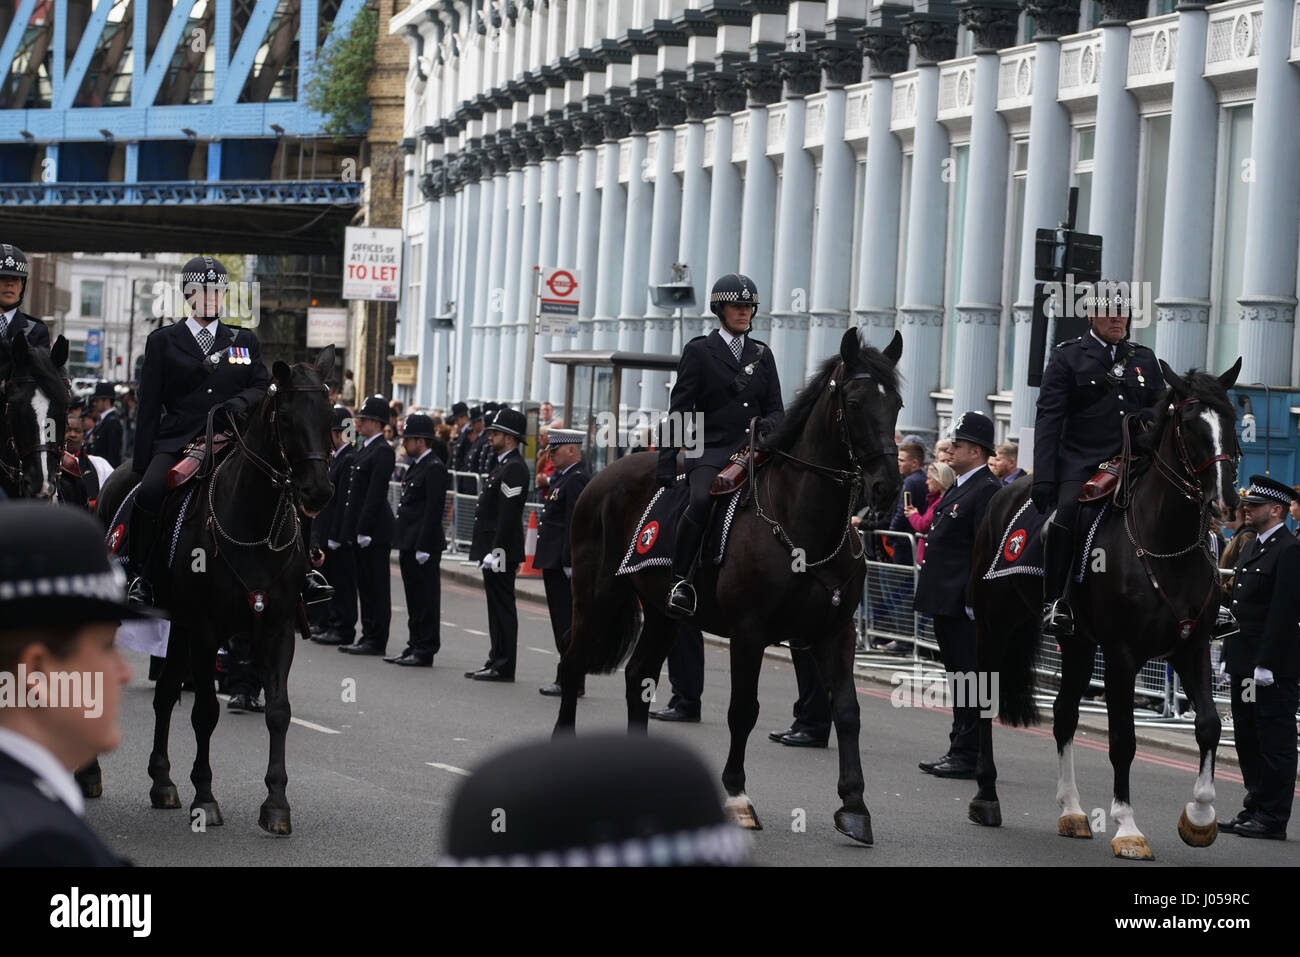 London, England, UK. 10th Apr, 2017. Stand for Keith cortege procession for funeral of PC Keith Palmer at Southwark - Stock Image